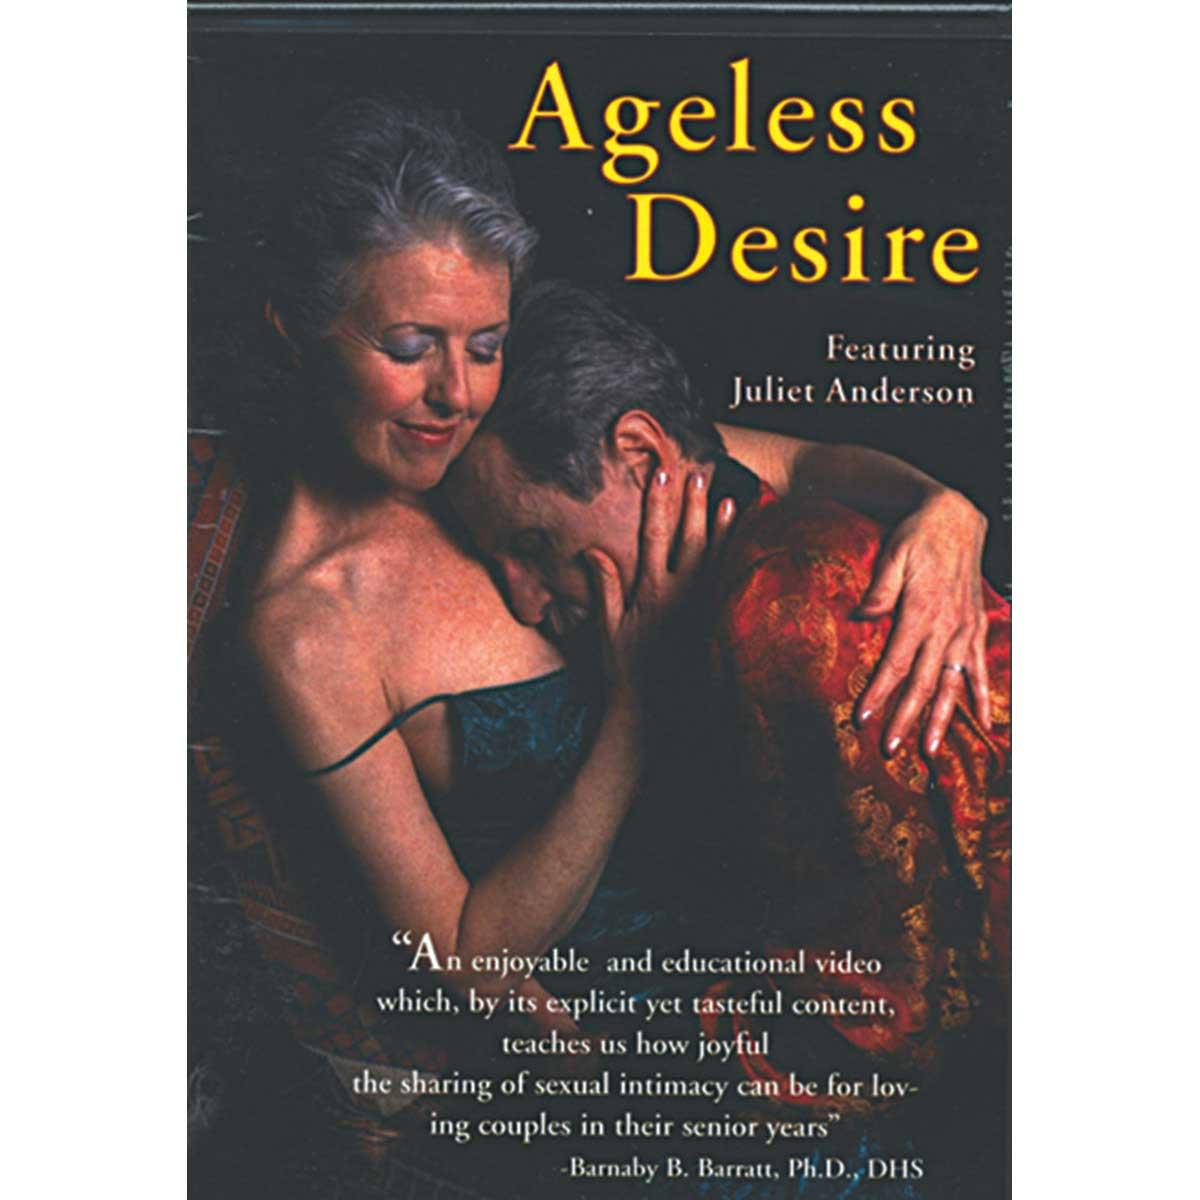 Ageless Desire DVD